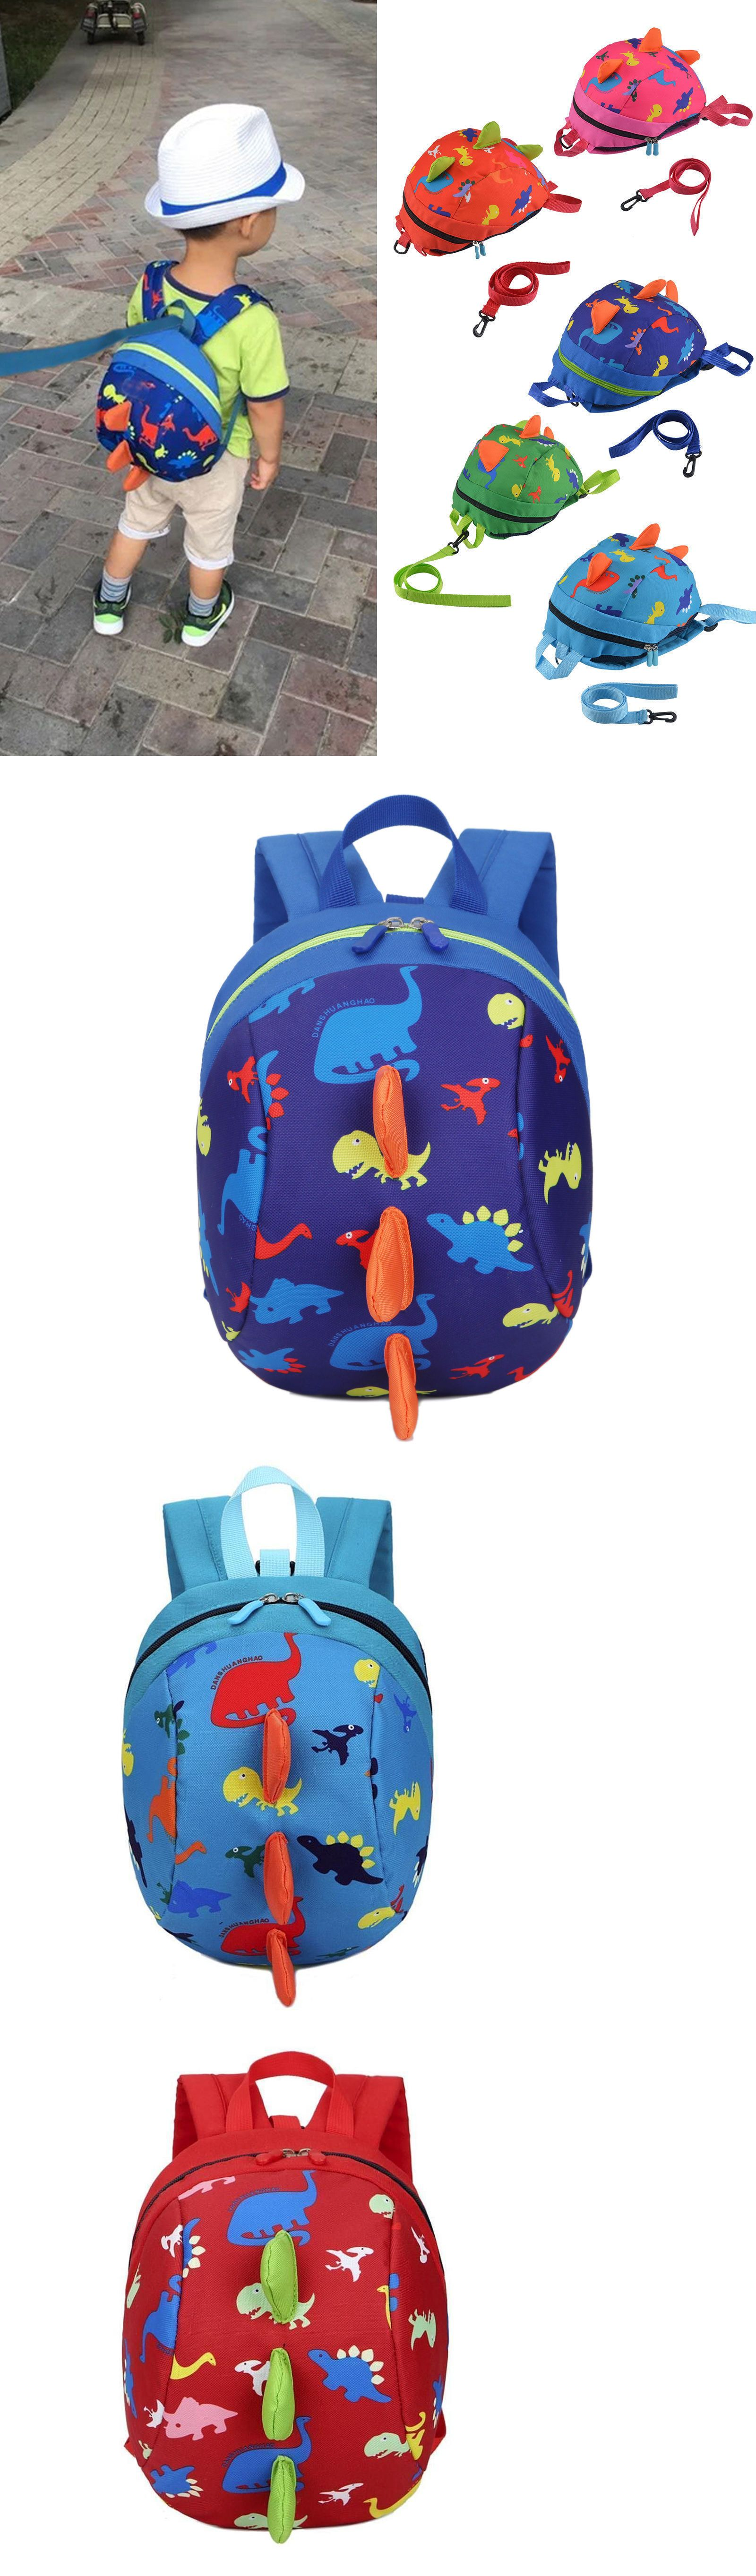 ece4b492fdba Toddler Safety Harnesses 134761  Toddler Backpack Anti-Lost Band Kids  Children Bag Dinosaur Cartoon School Bag Us -  BUY IT NOW ONLY   10.69 on  eBay!